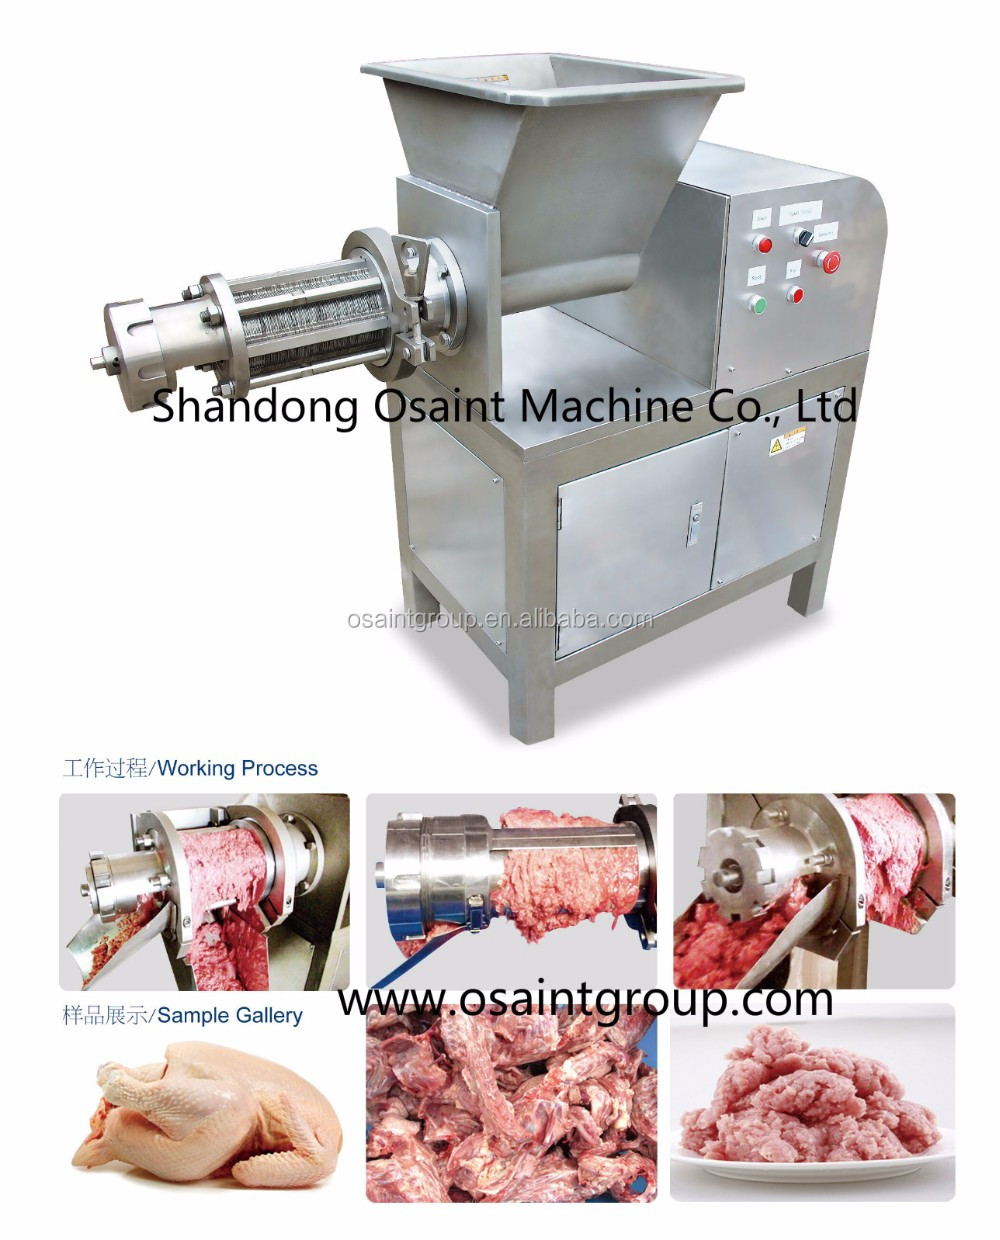 Chicken meat mdm machine for making sausage burger and so on